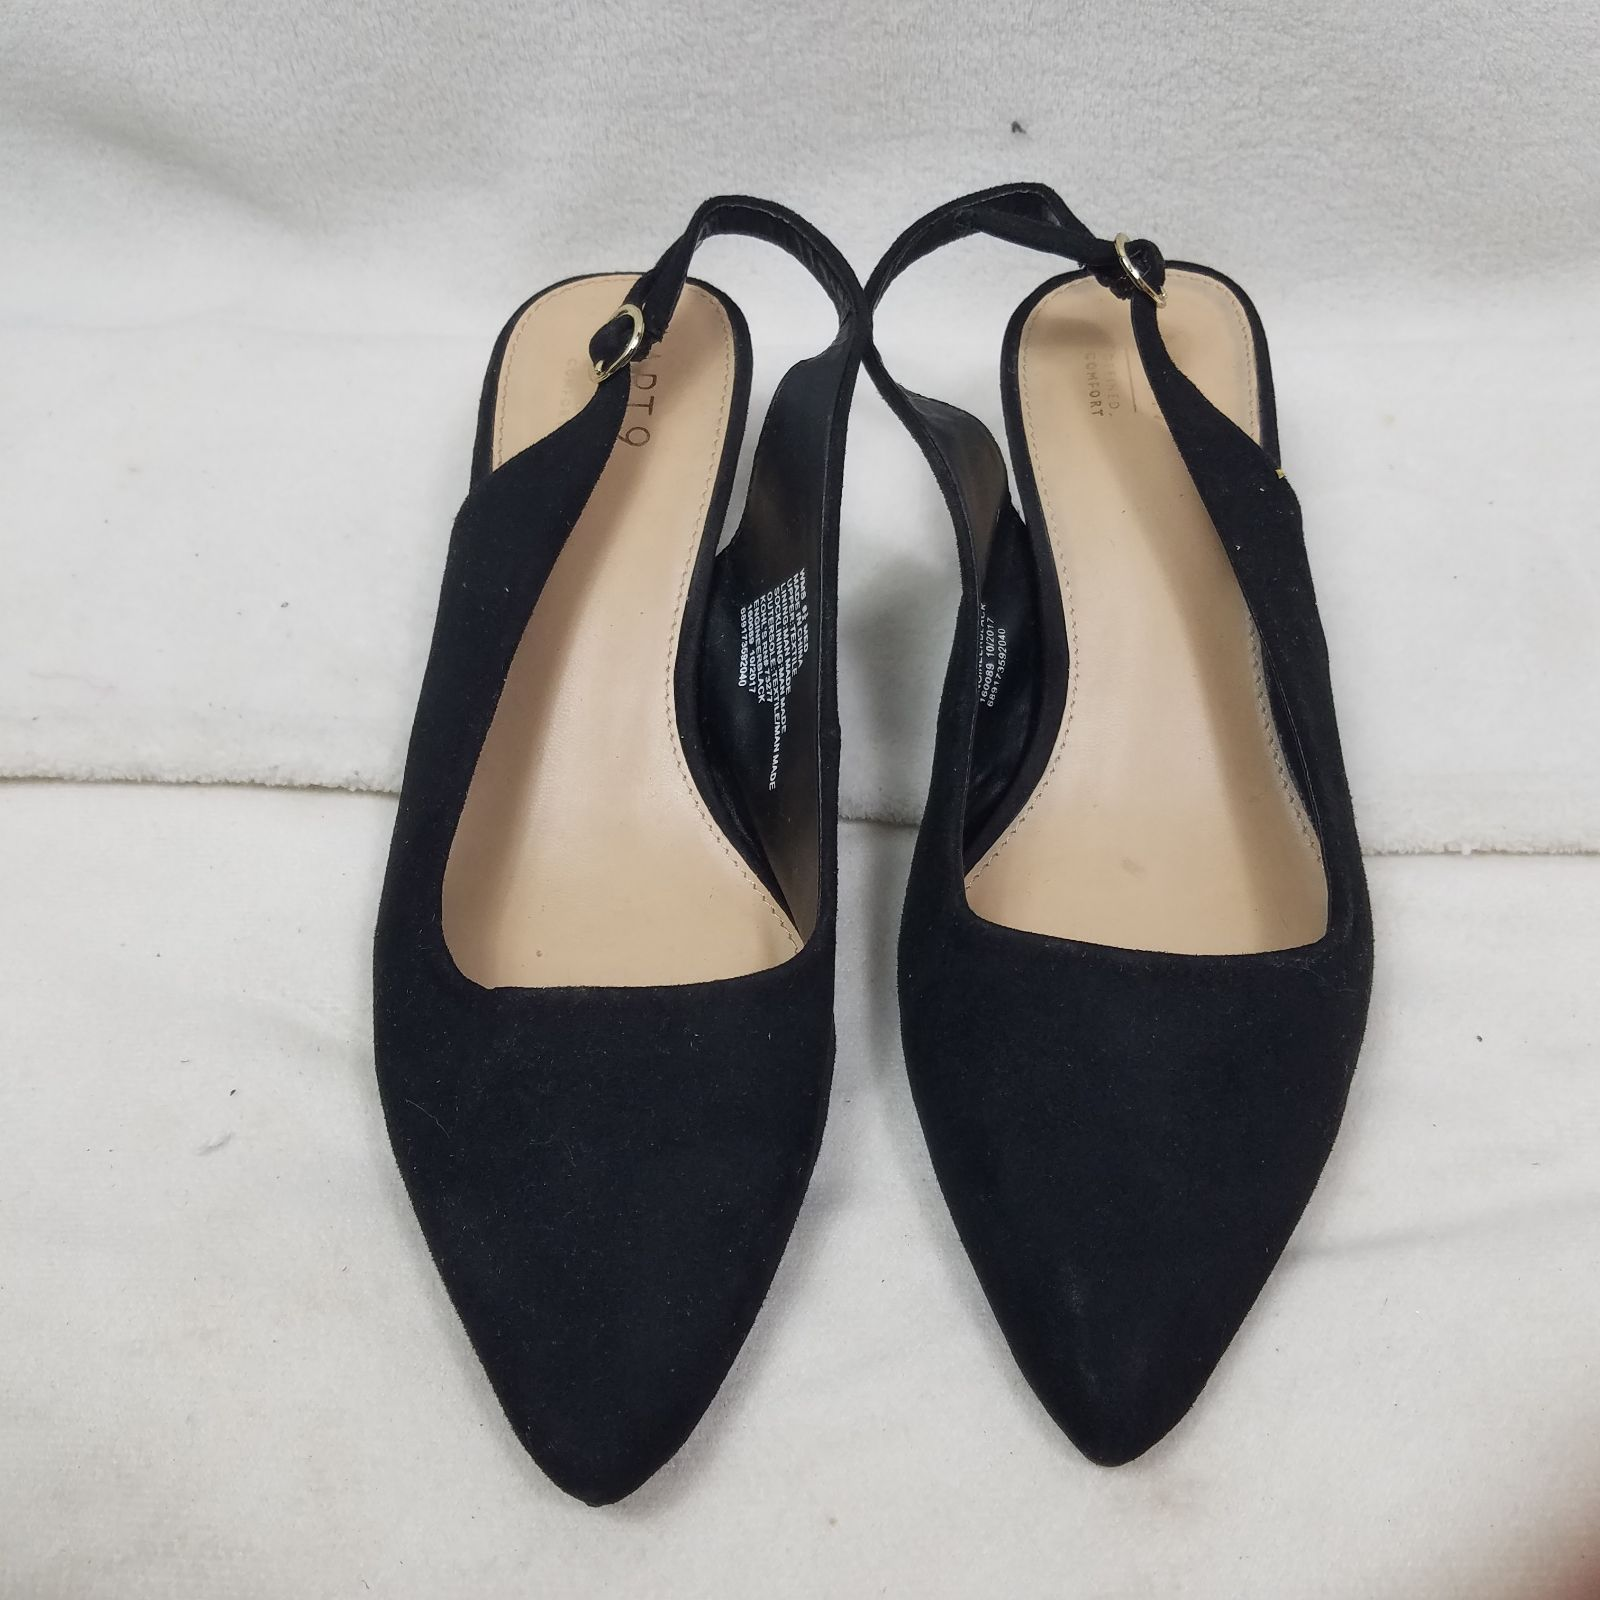 NEW Apt.9 Women/'s Defined Comfort Slip On Round Toe Mules Black #160089 168E tk